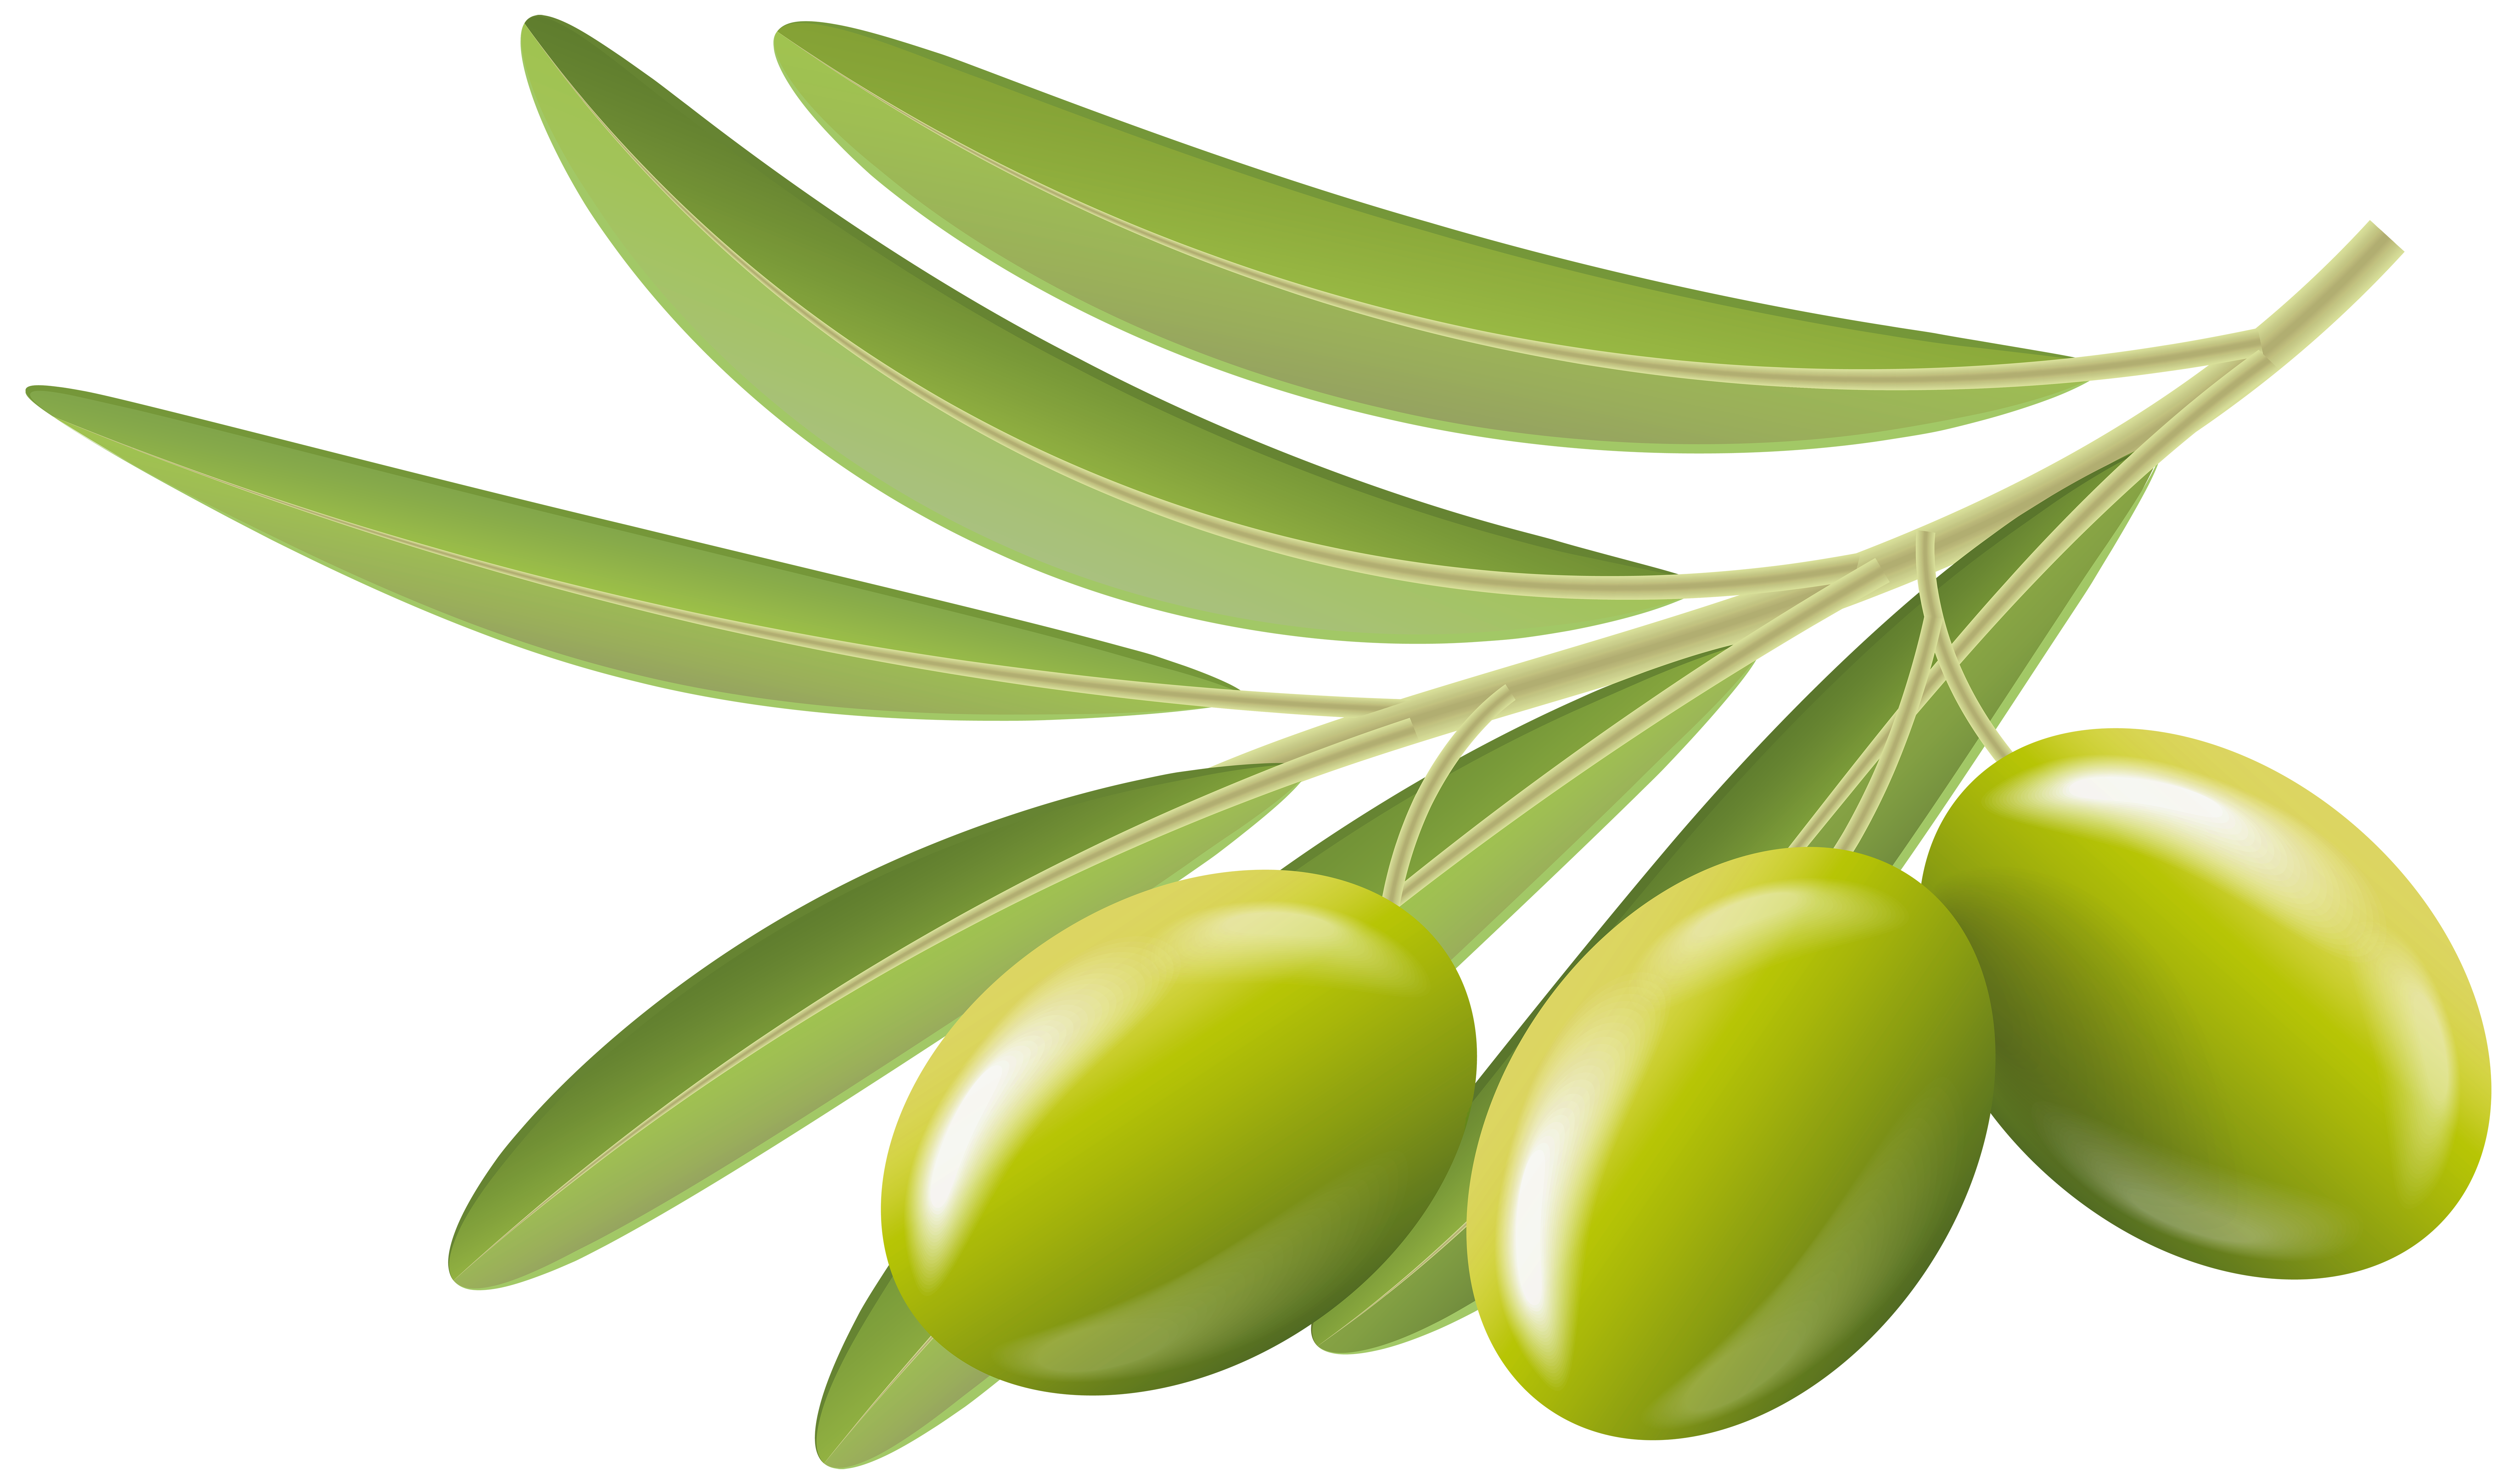 Olives clipart clipart transparent library Green Olives Transparent Clip Art Image | Gallery Yopriceville ... clipart transparent library